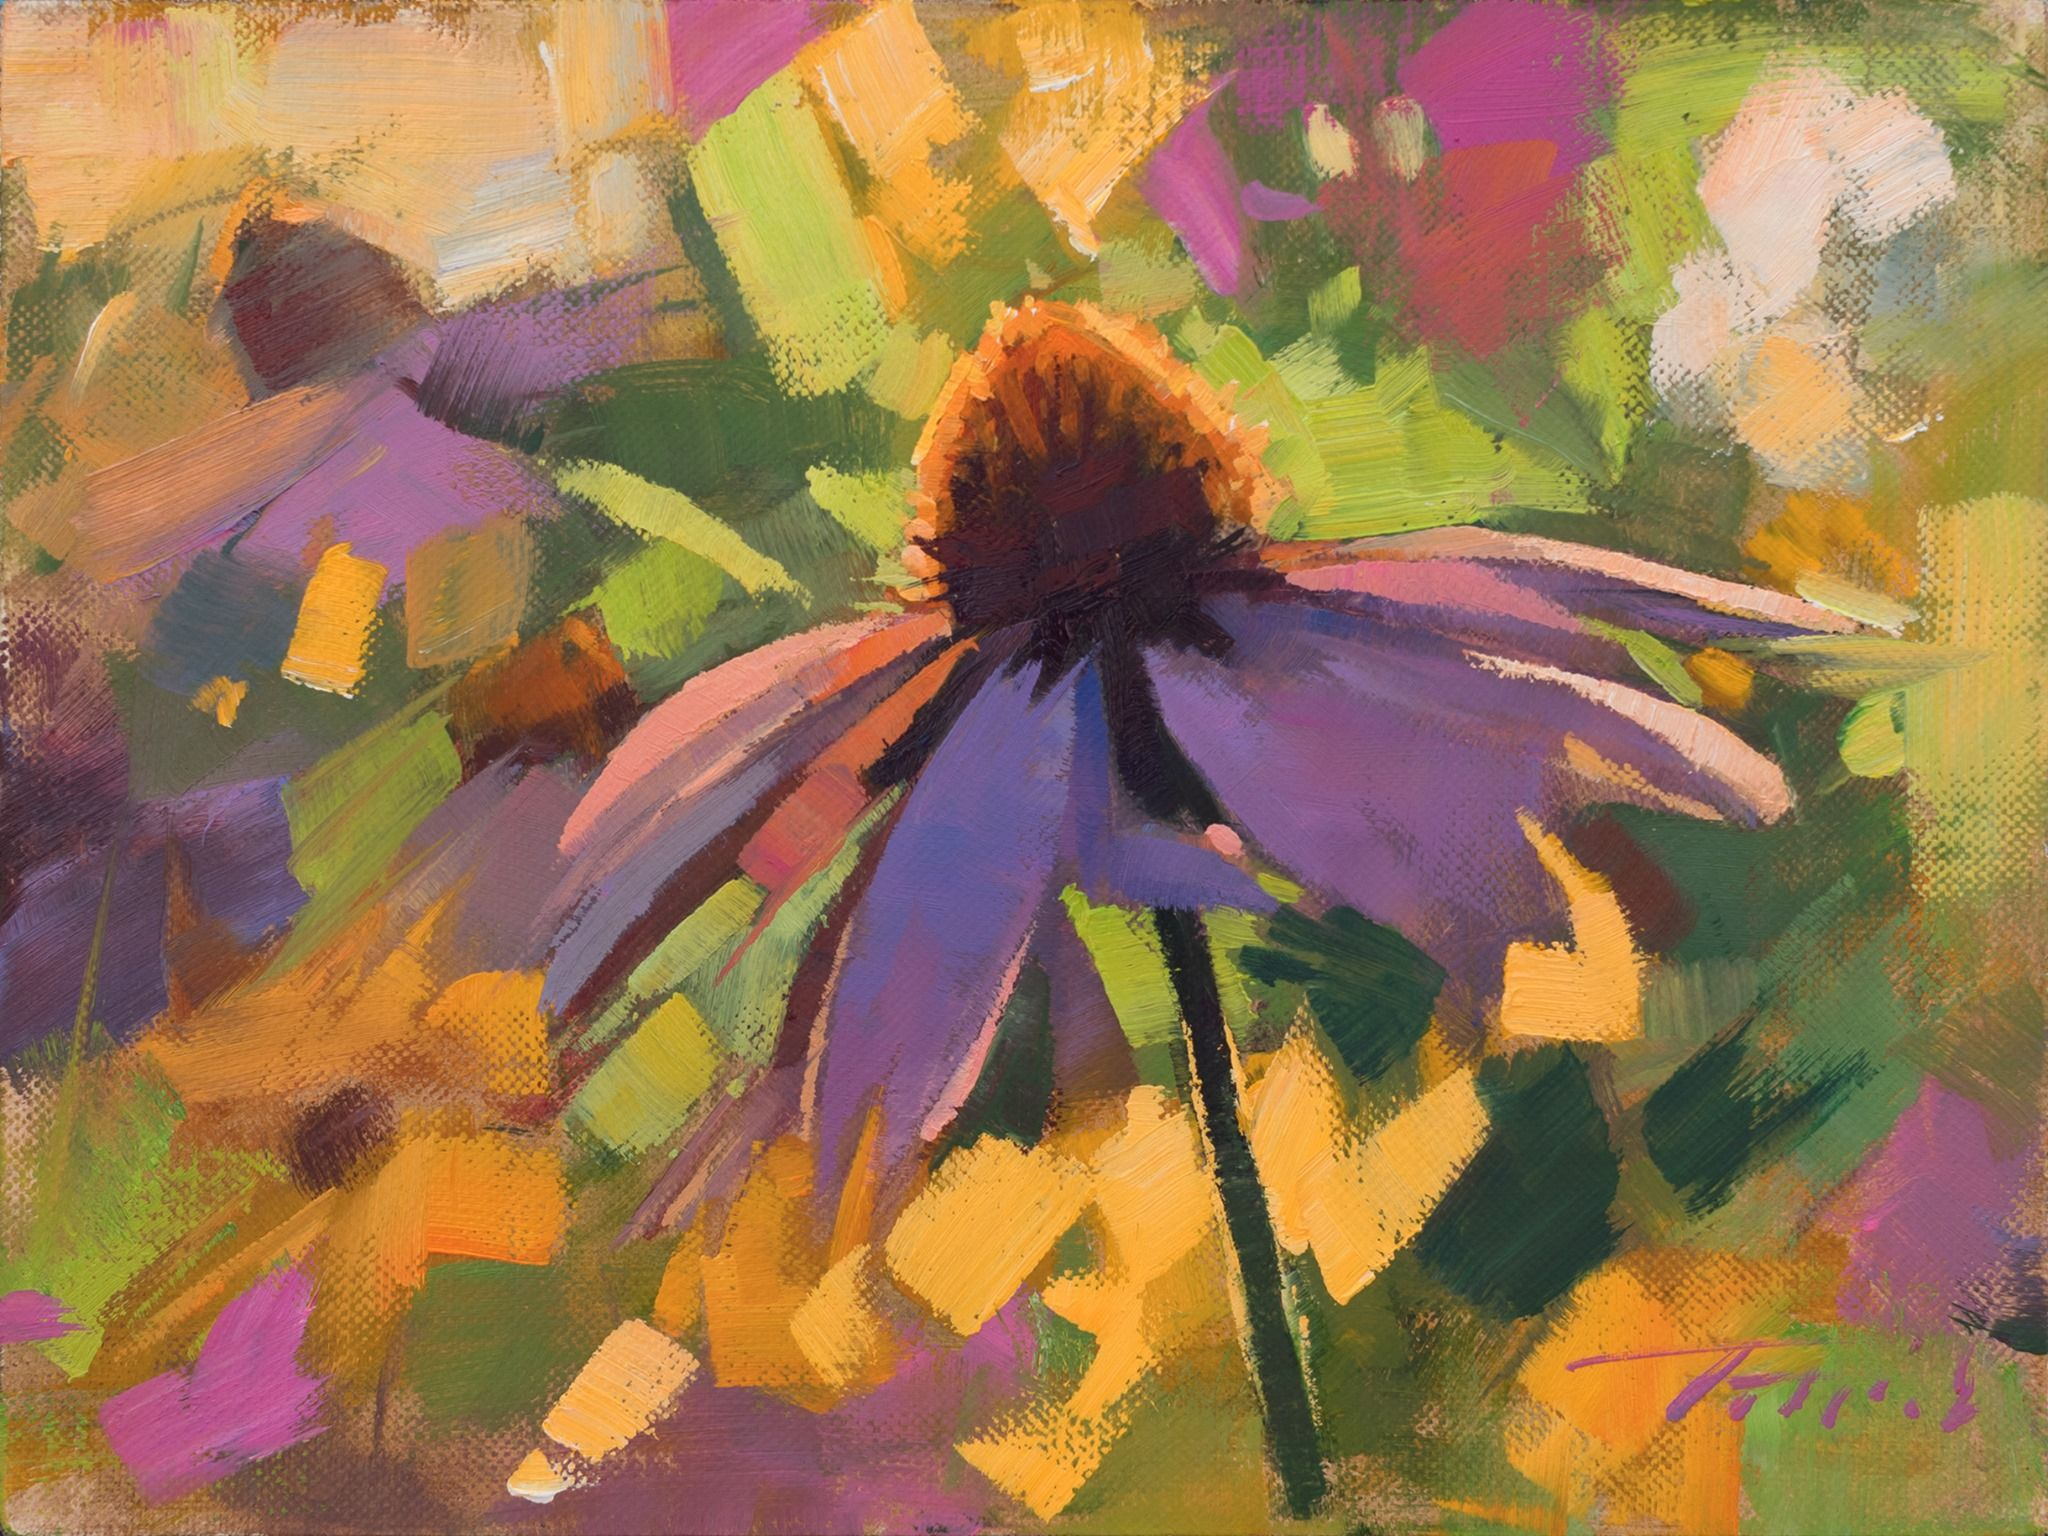 2019 Plein Air Easton Competition and Arts Festival